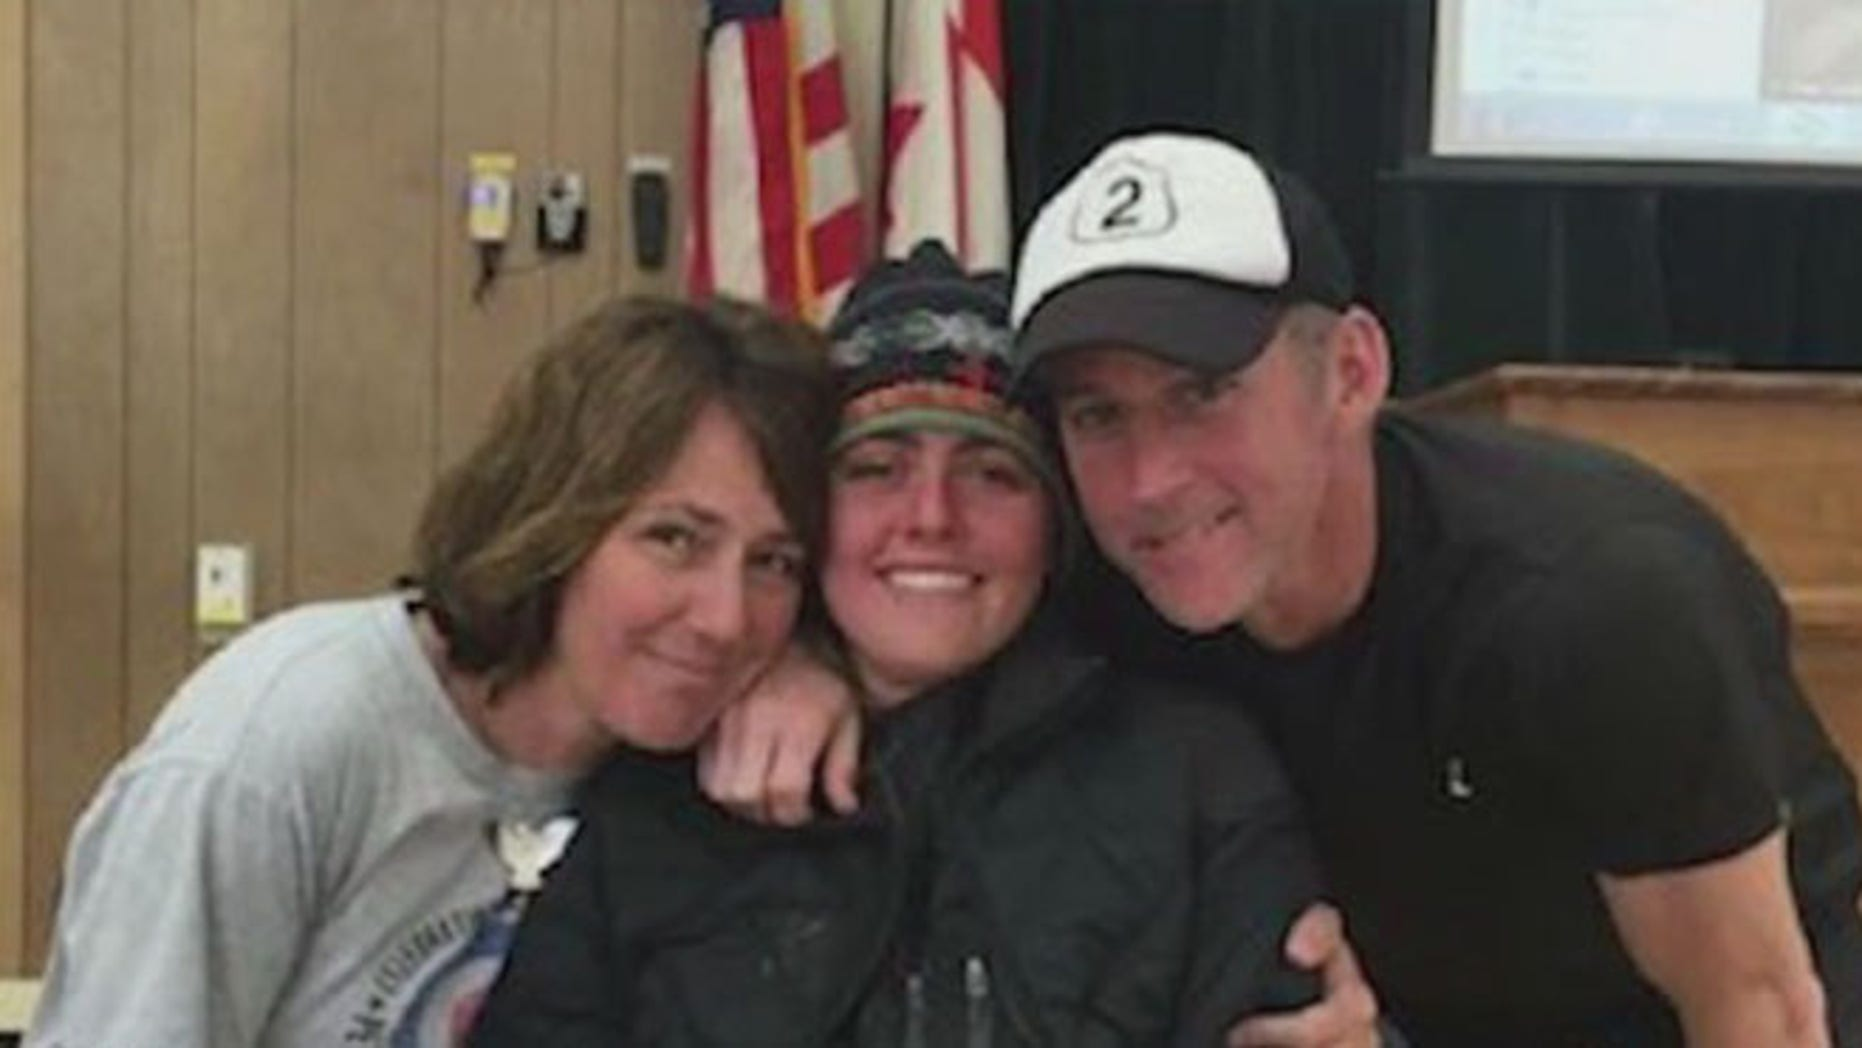 Missing hiker Madeline Connelly 23, got hugs from her parents at Glacier Park Headquarters after being found.